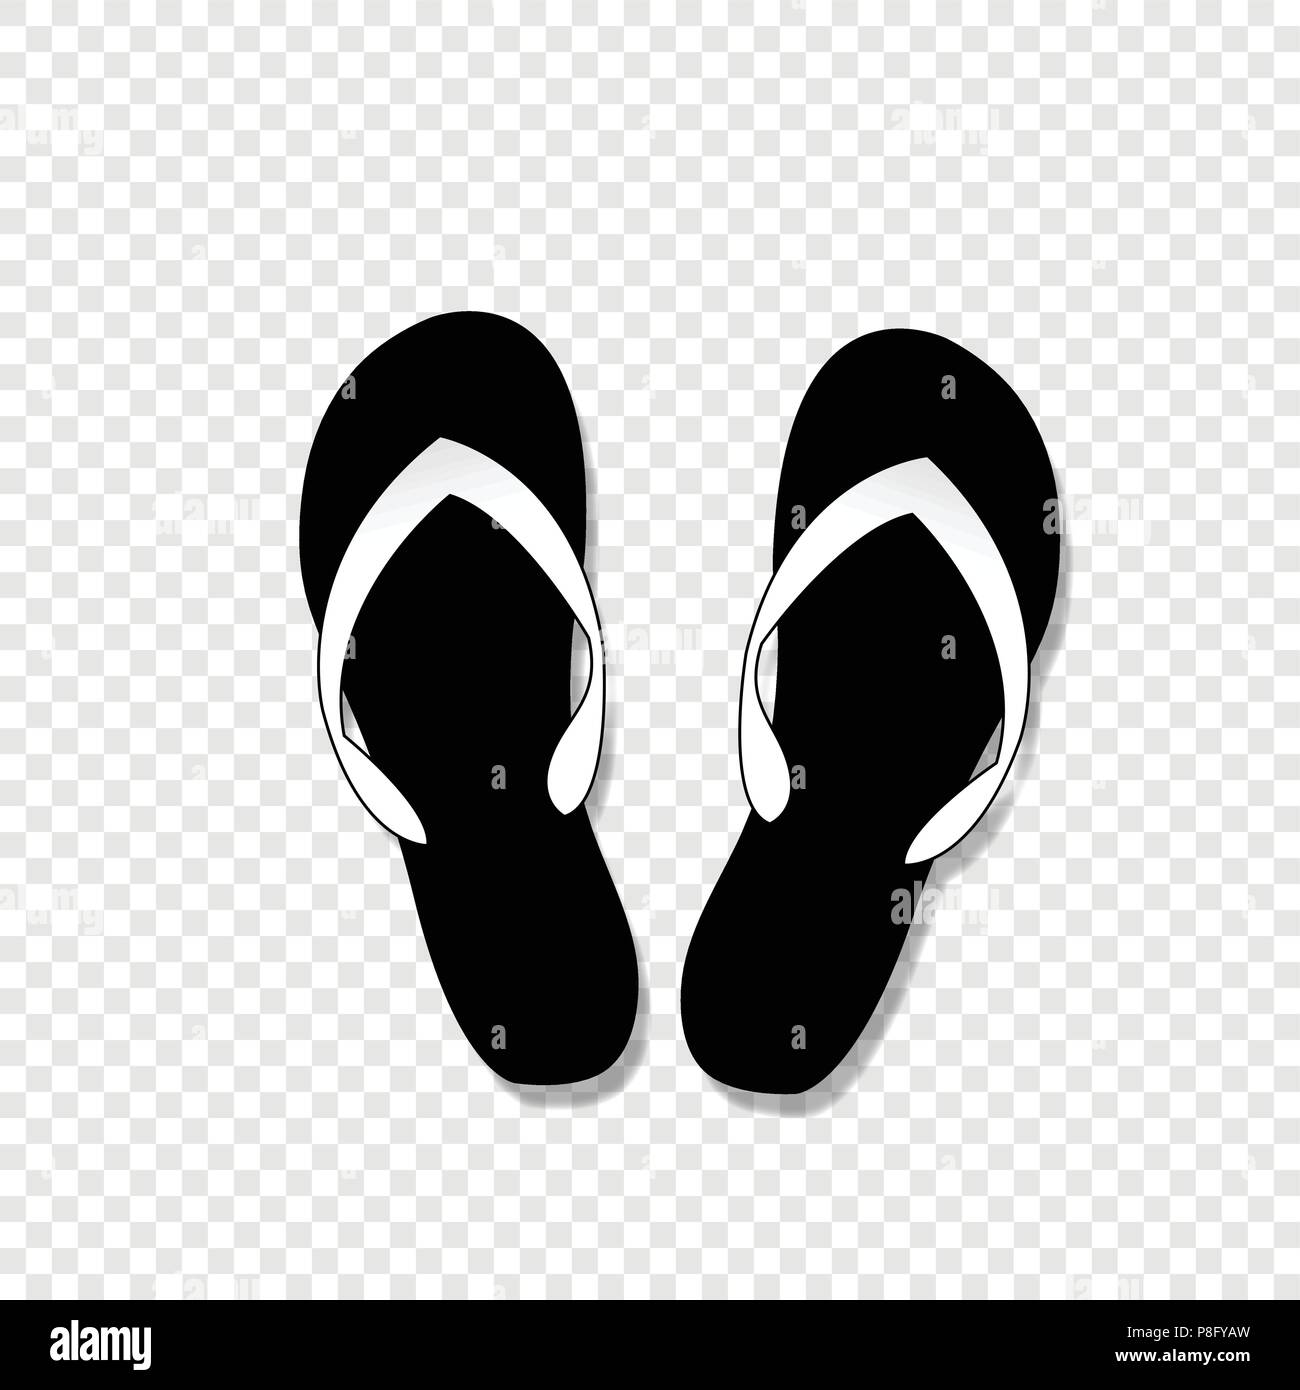 a8ca41526 Vector black and white monochrome silhouette illustration of flip-flops  icon isolated on transparent background.